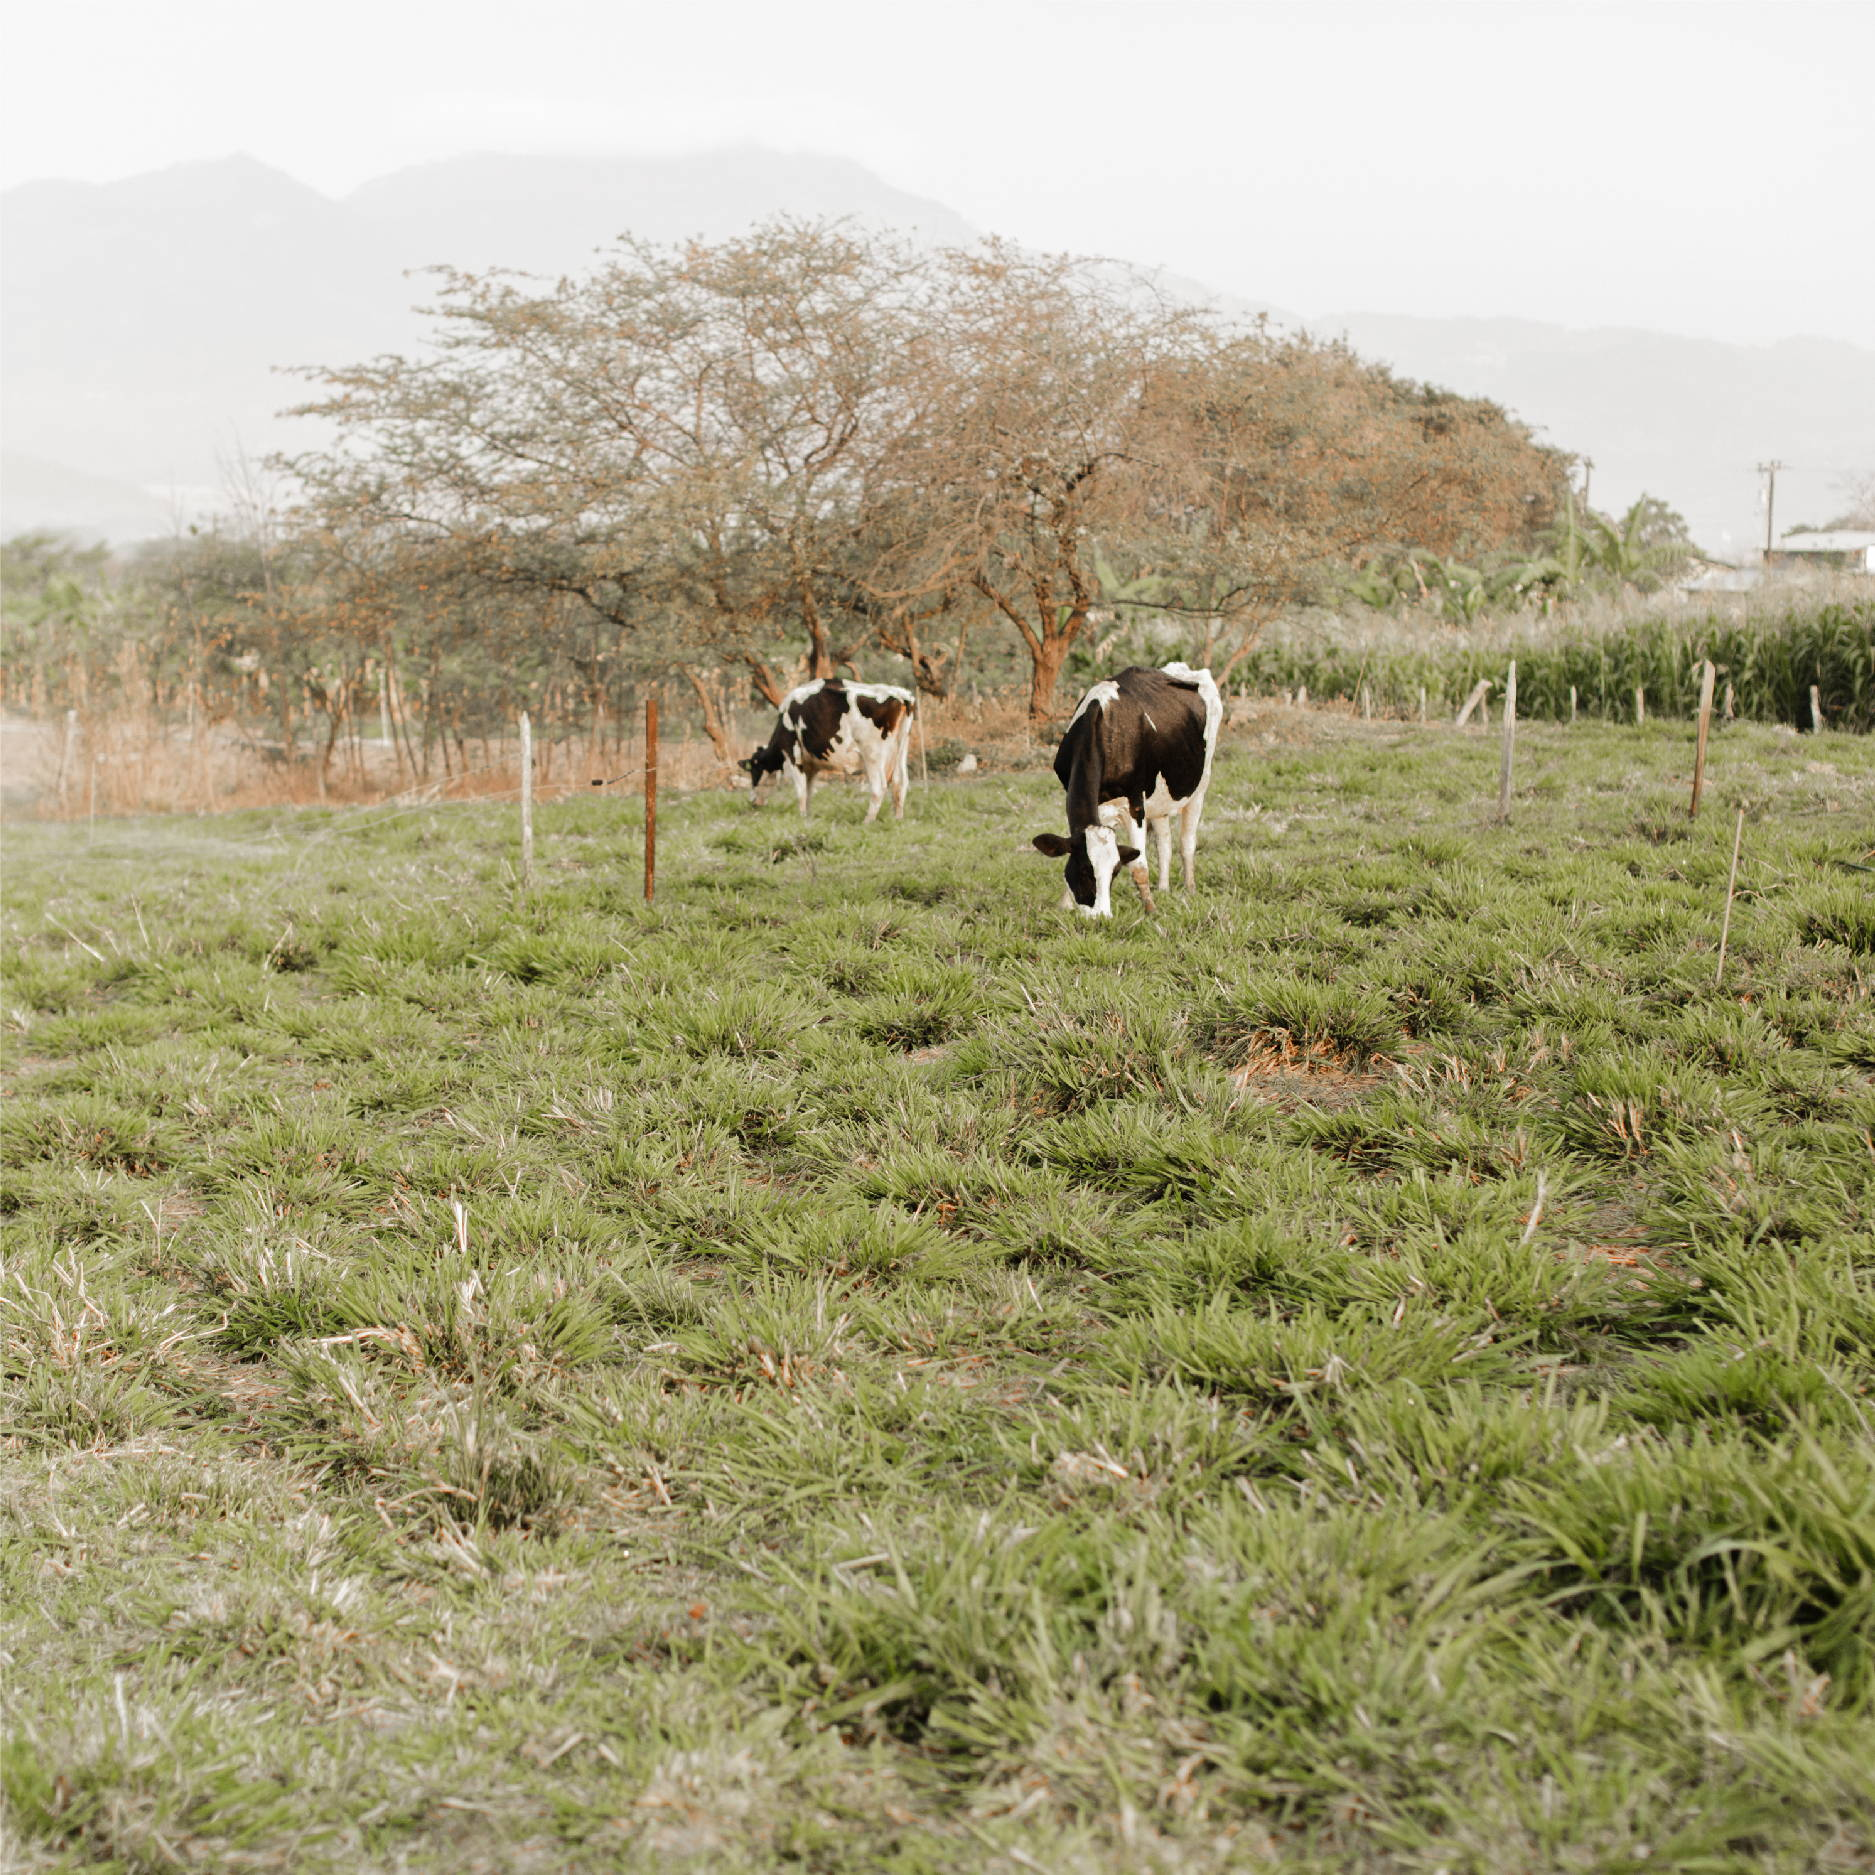 Two cows graze in a lush Honduran field with a large tree in the background.